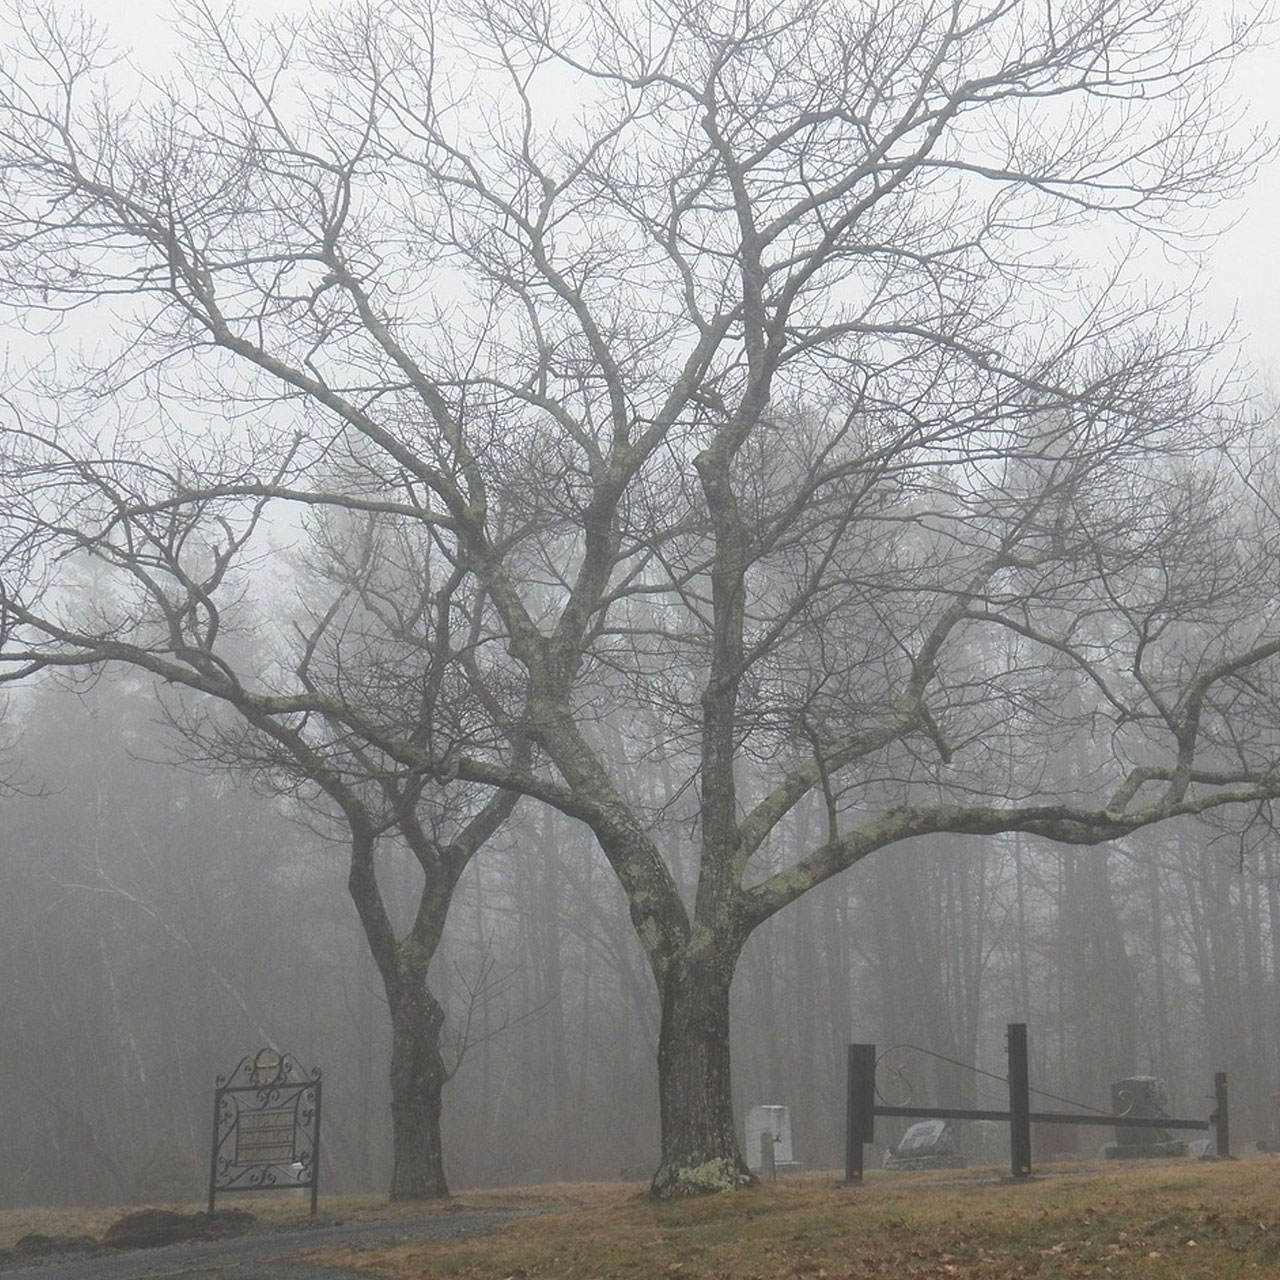 A tree surrounded by mist in a cemetery.